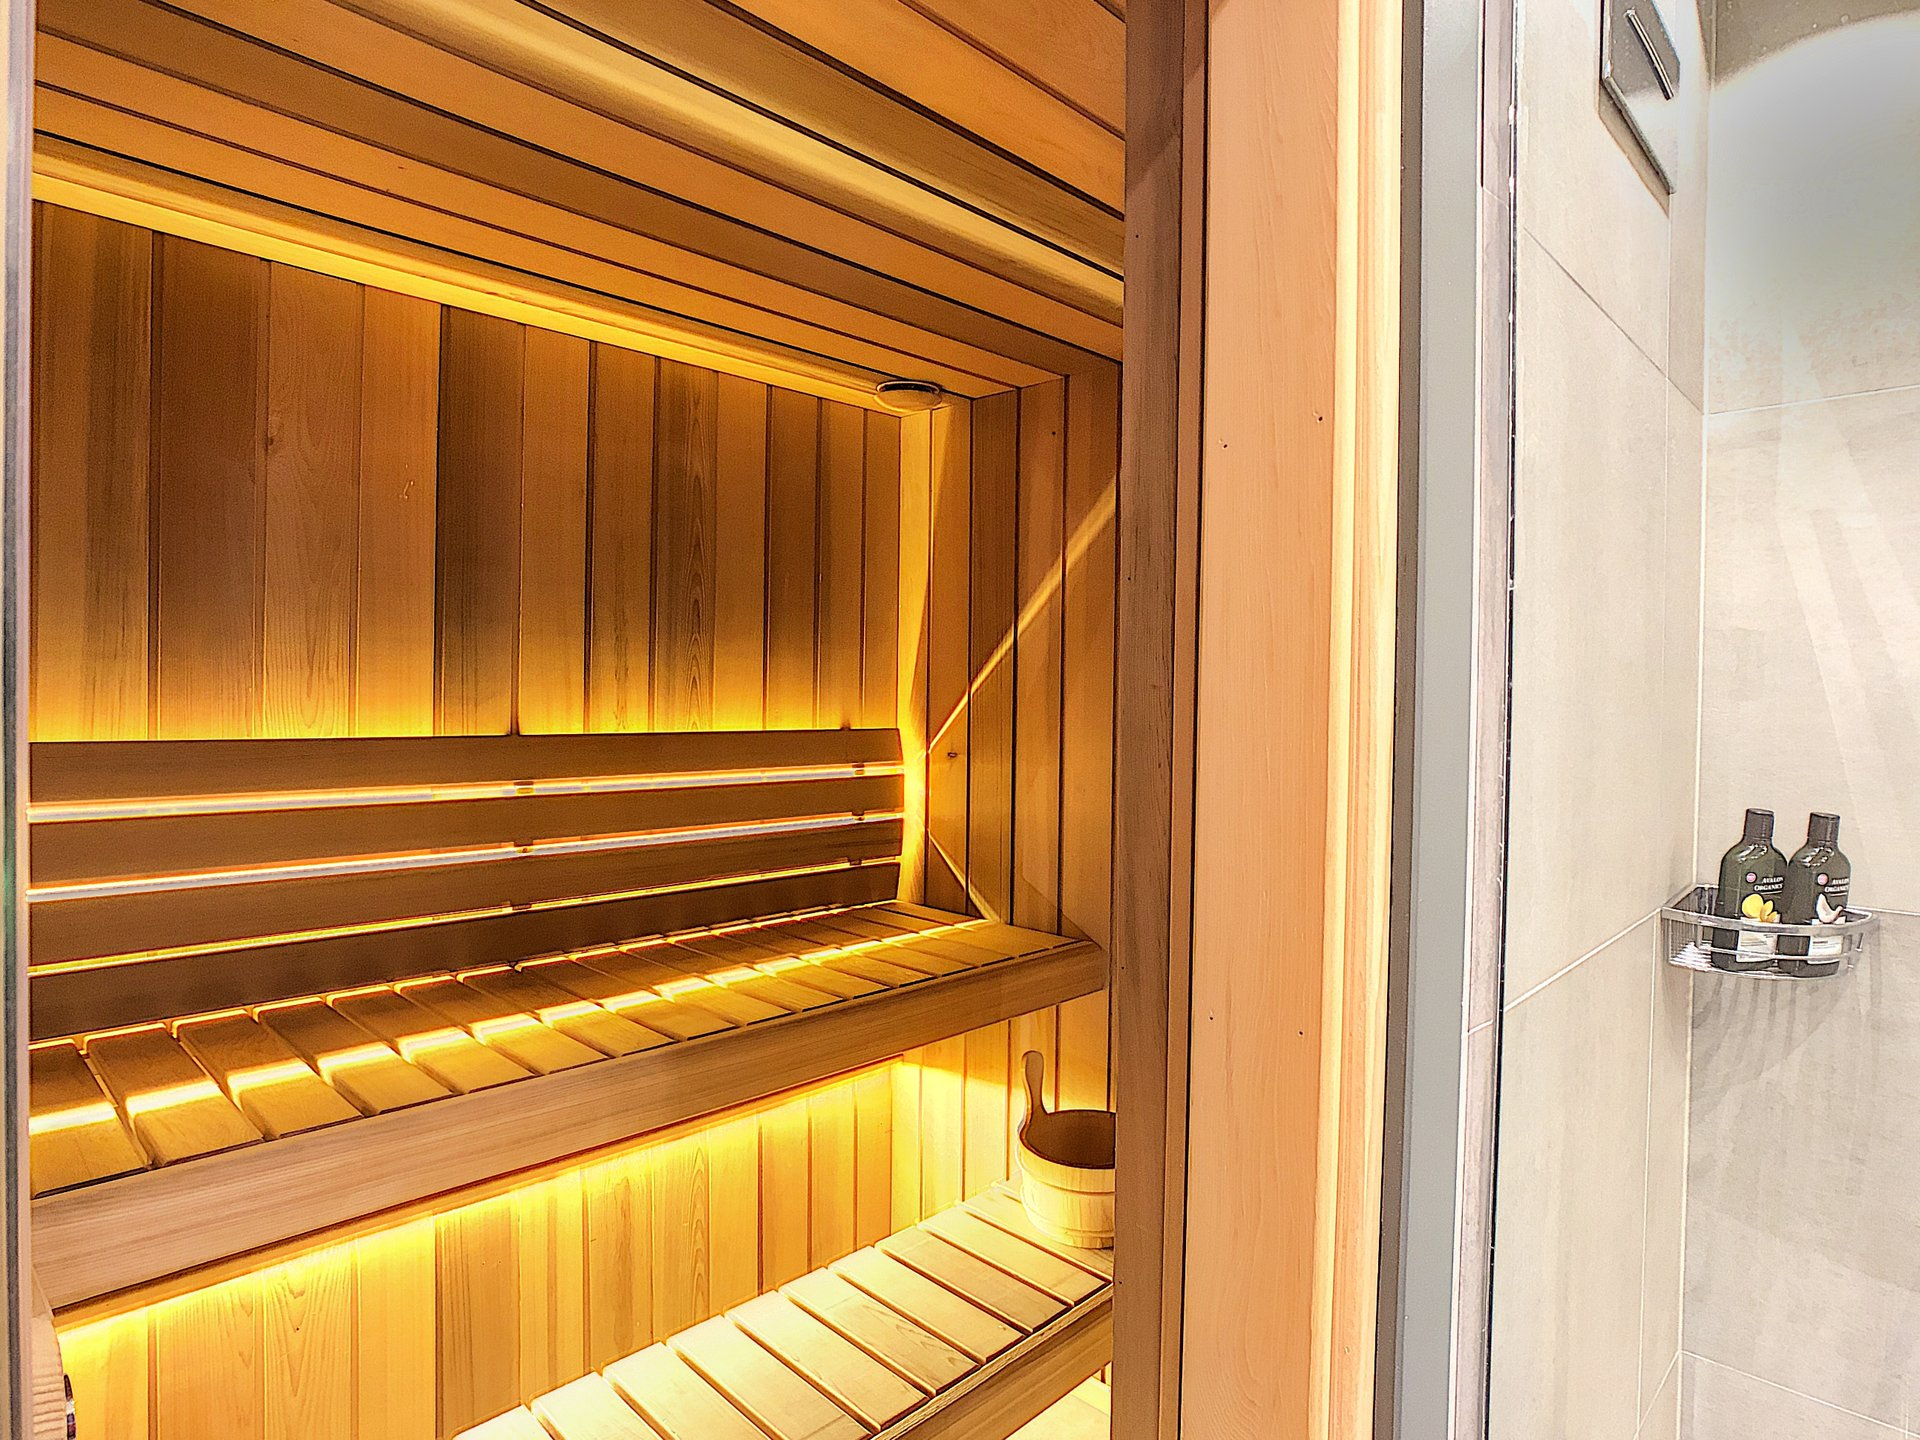 Sauna for 4 people